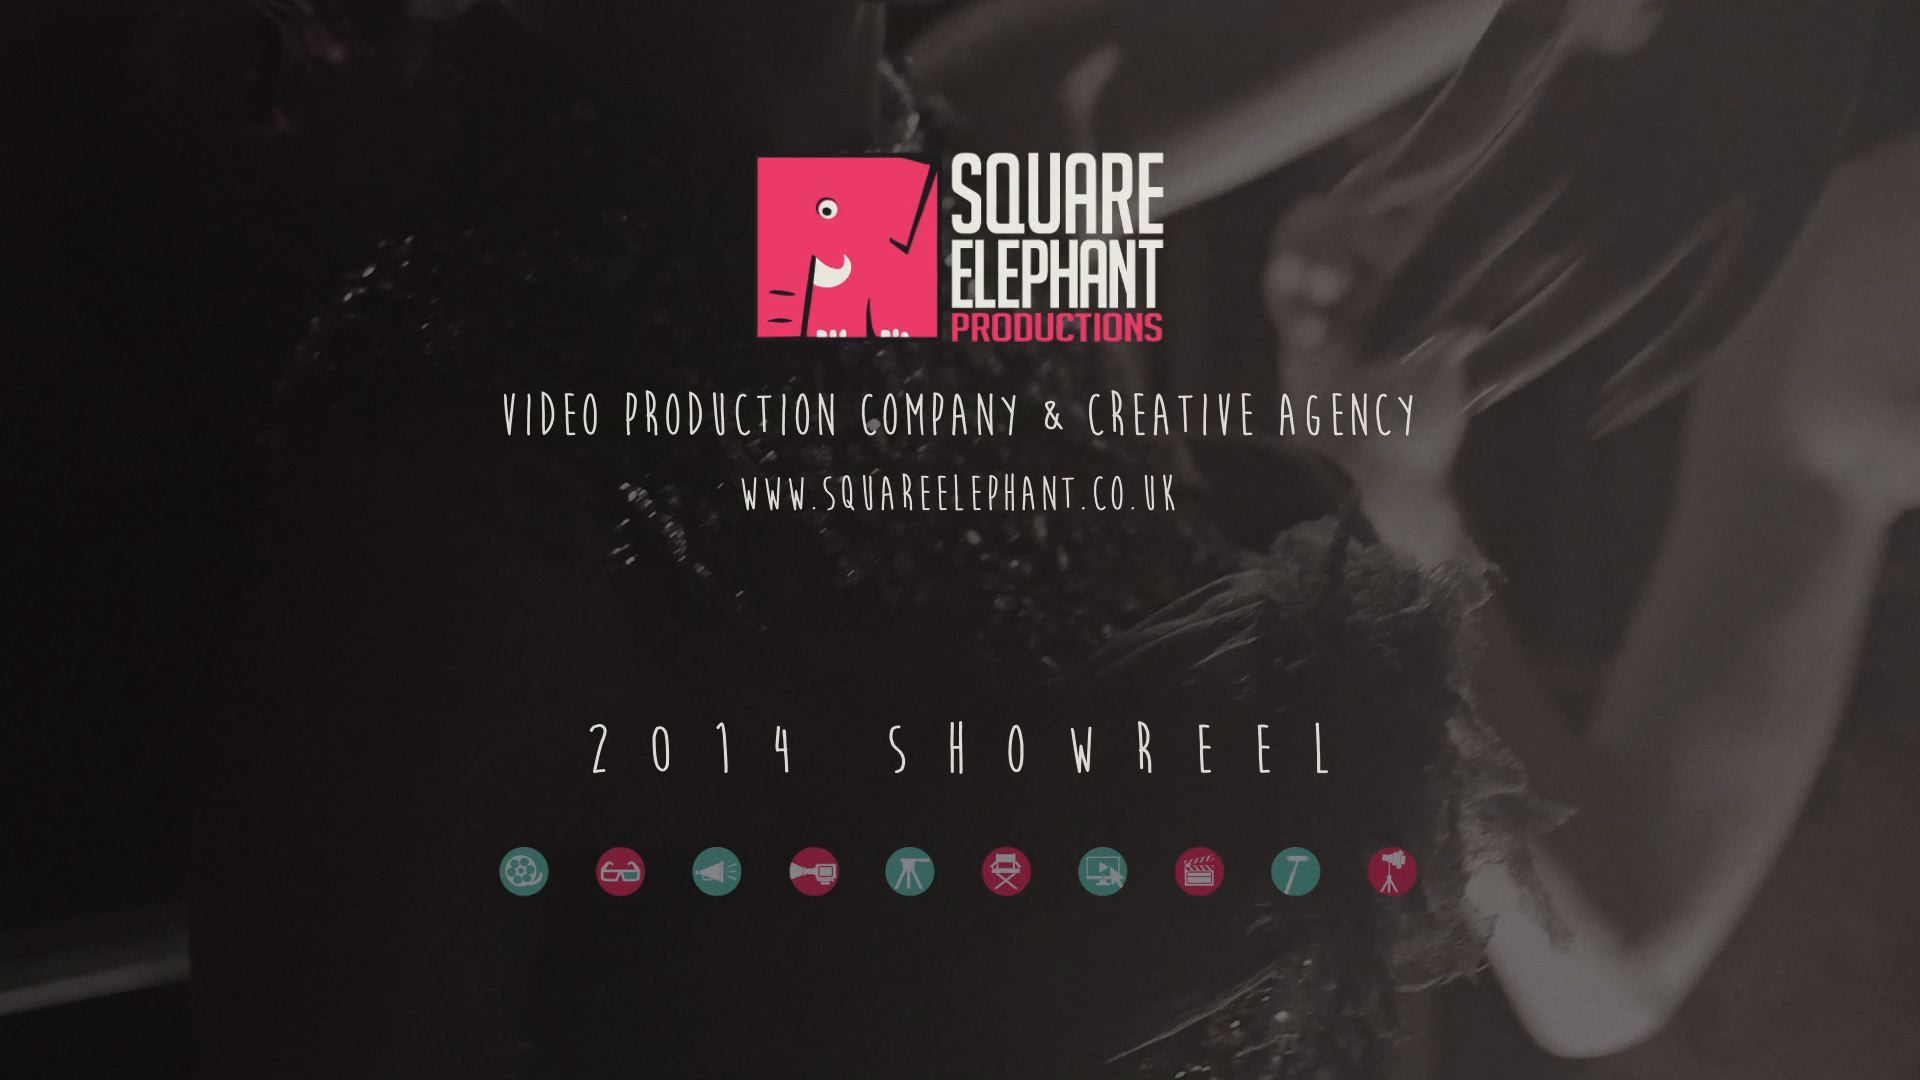 Square Elephant Productions Showreel 2014